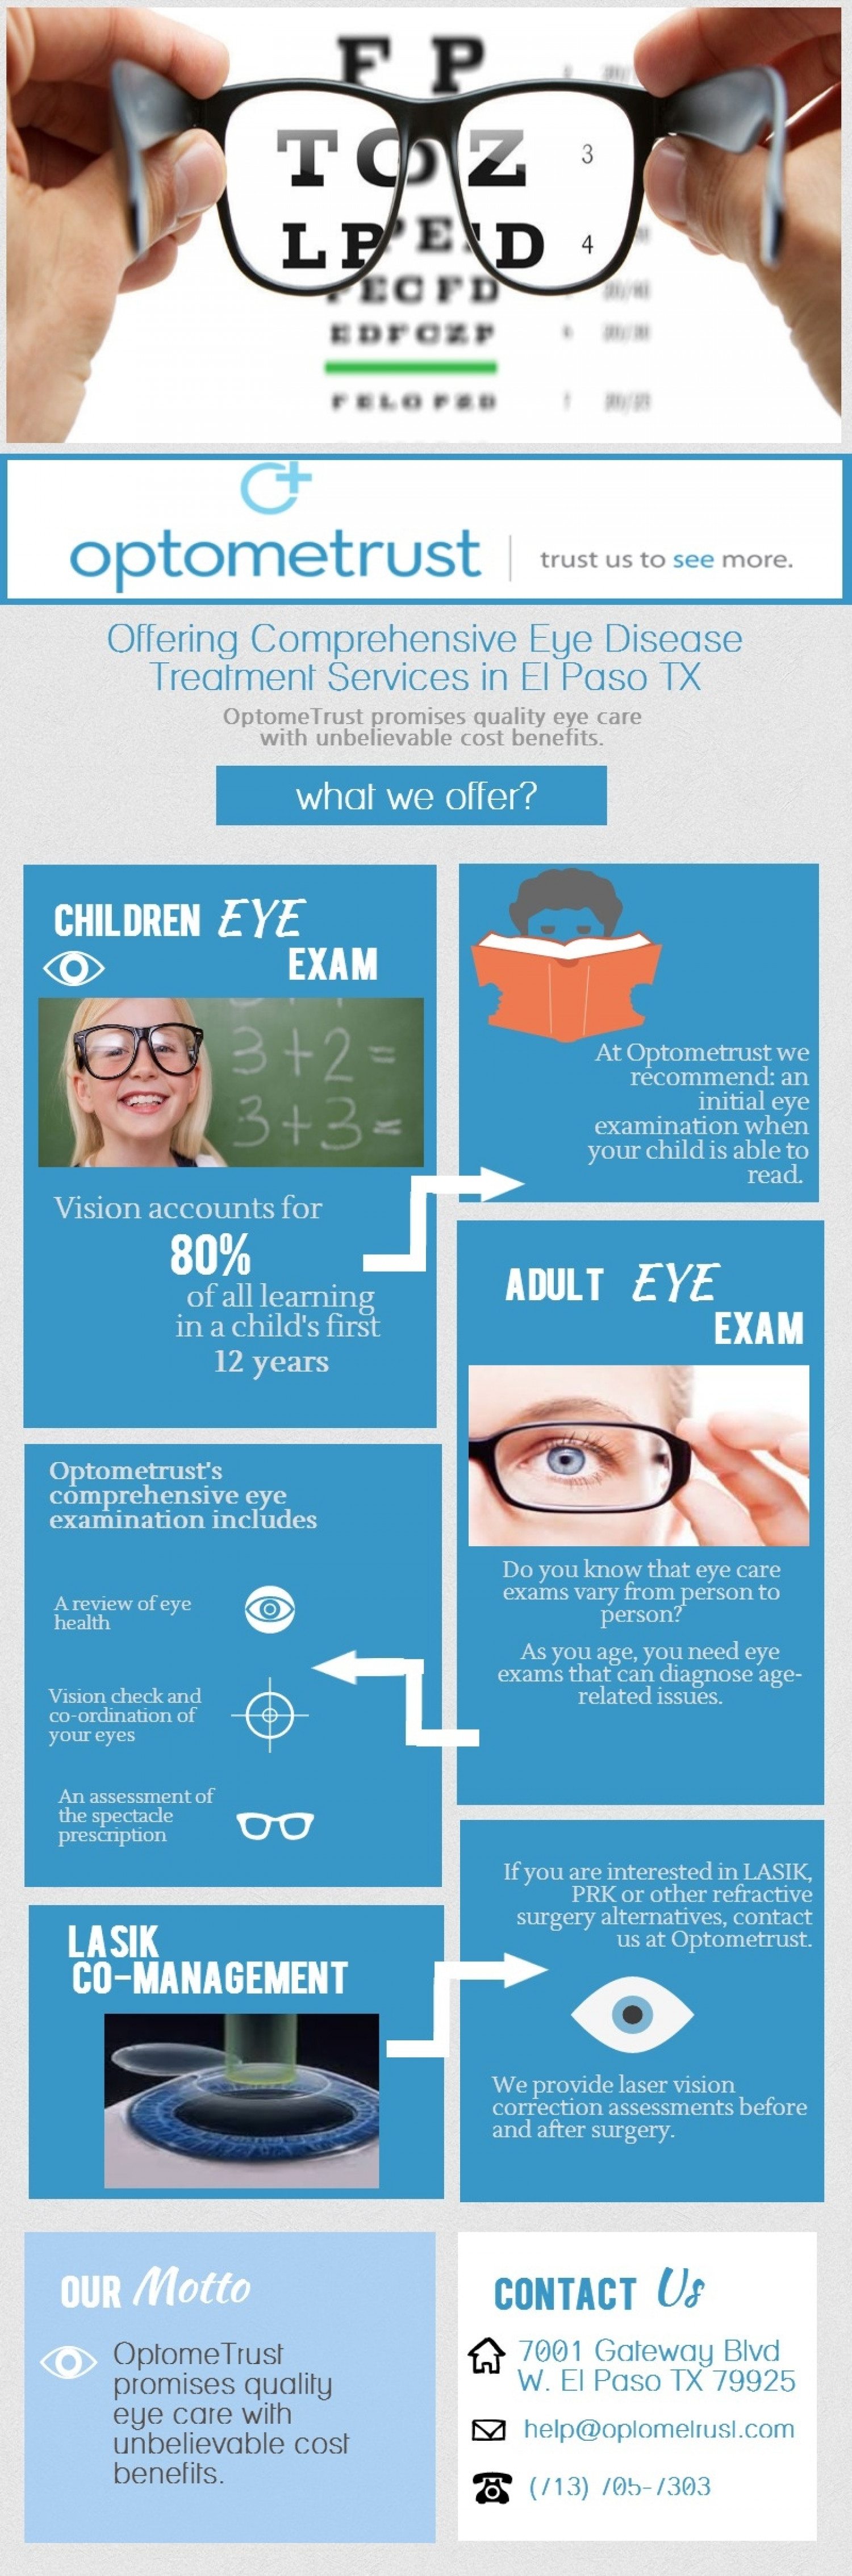 Optometrust.com Infographic